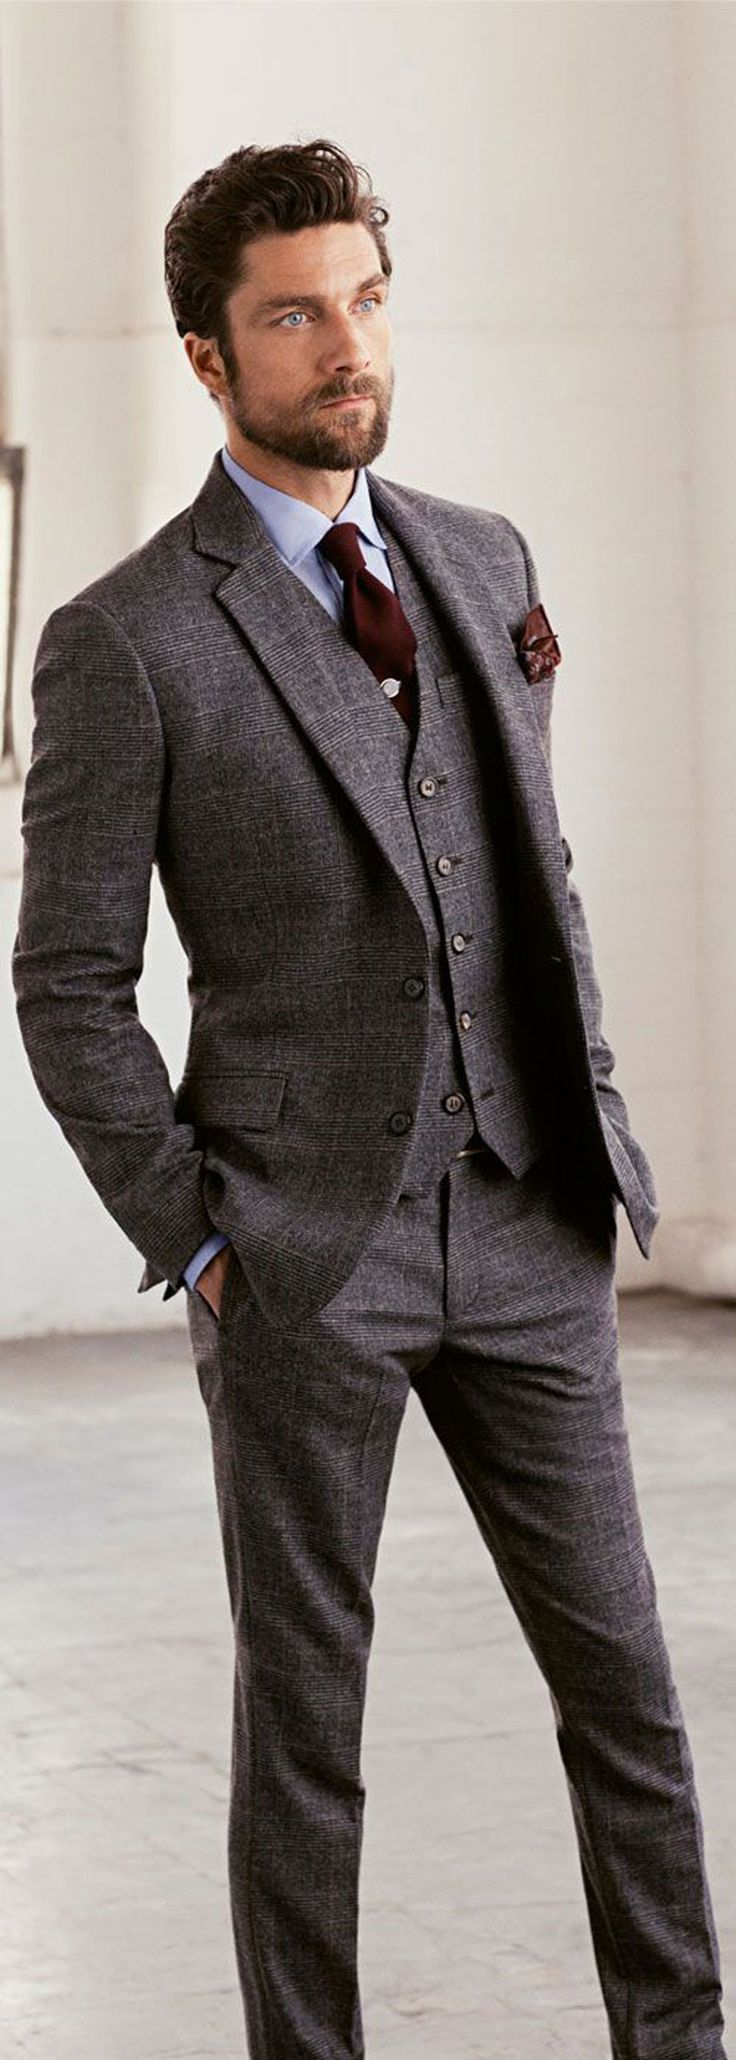 Best 25  Men's grey suits ideas on Pinterest | Grey suits, Grey ...